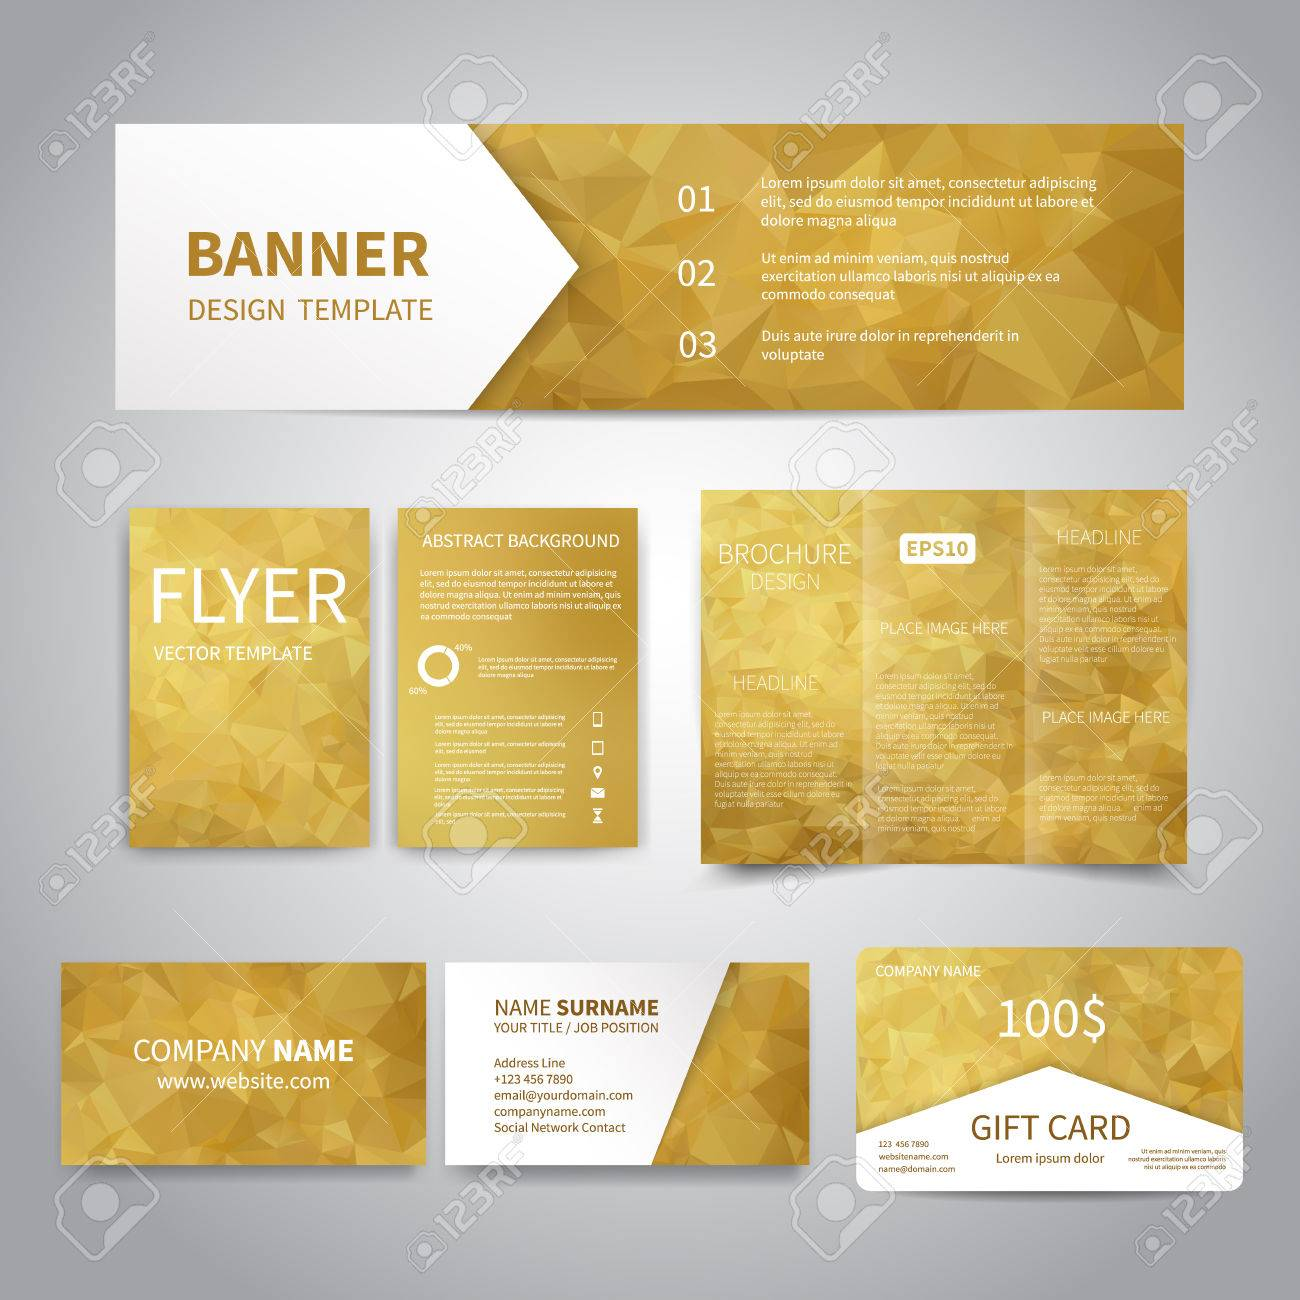 Banner, Flyers, Brochure, Business Cards, Gift Card Design ...